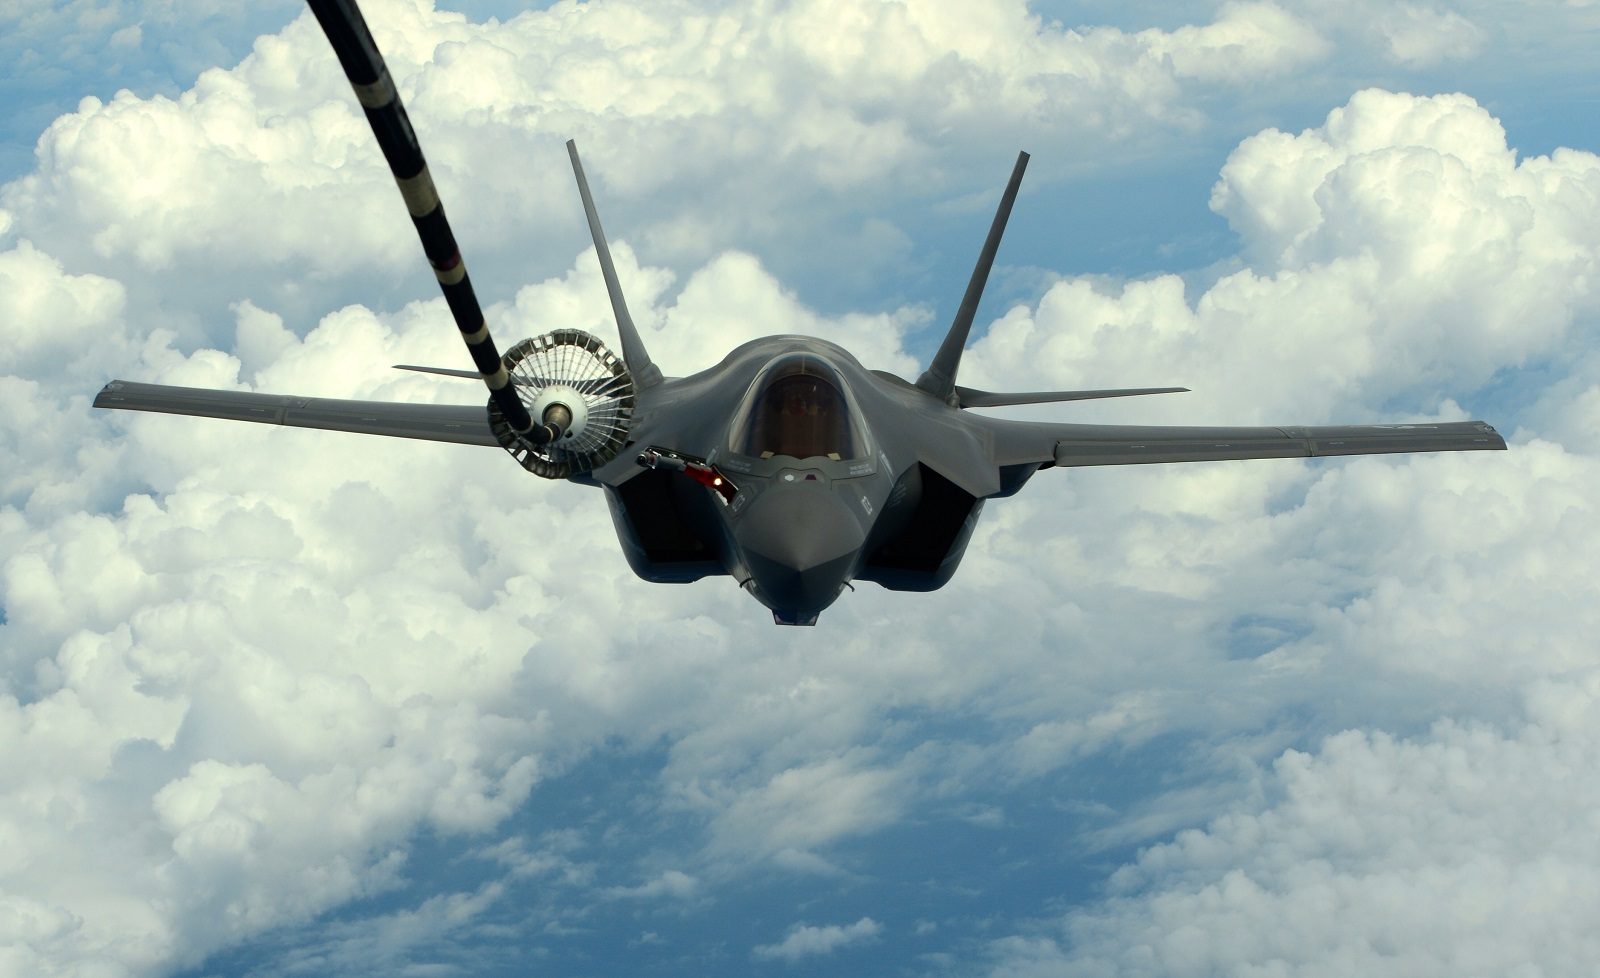 Skyborg: The Air Force's Robot Wingman That Could Fly Into Battle with an F-35